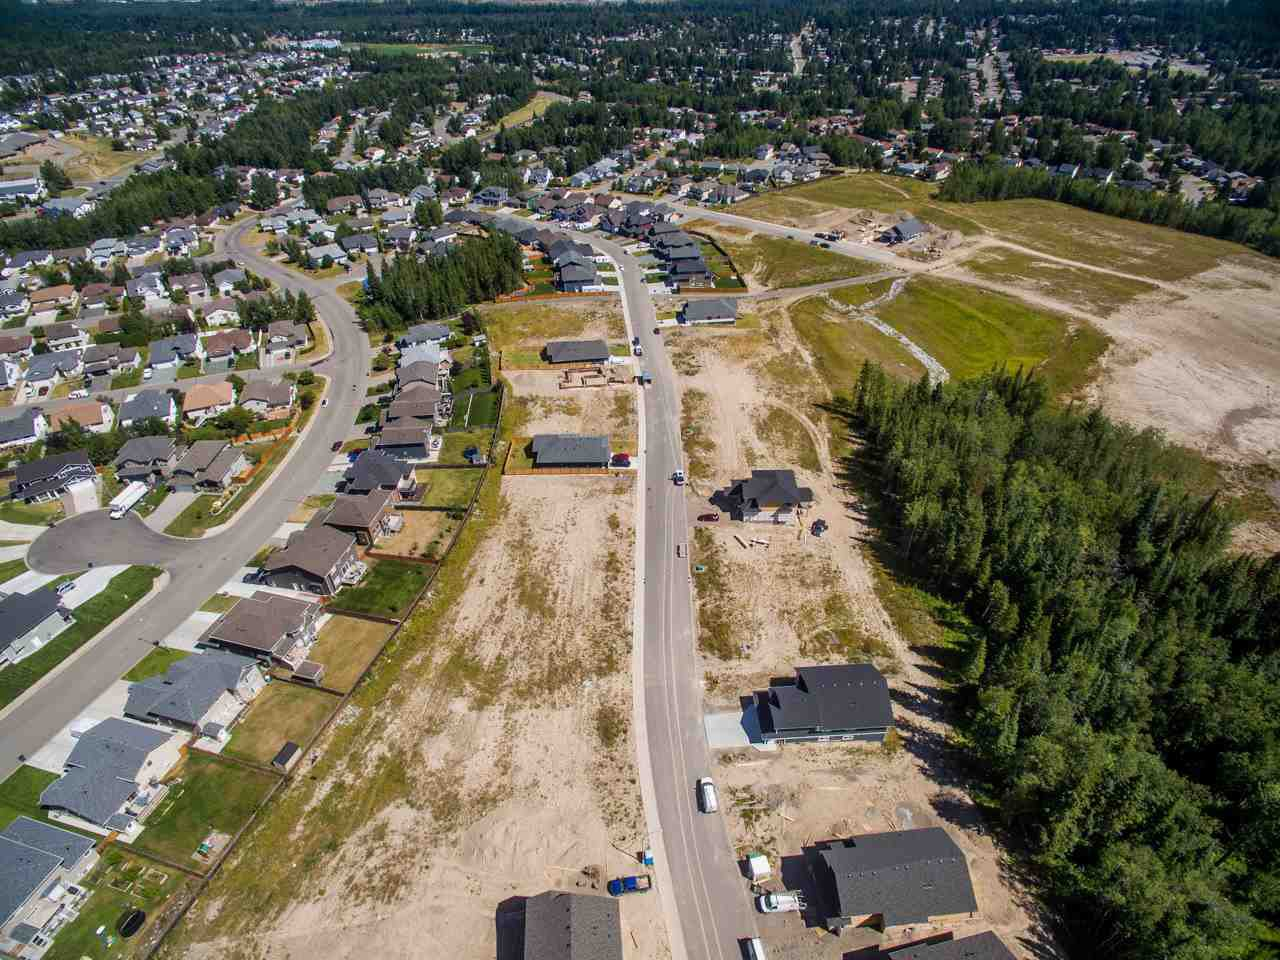 Main Photo: 2845 VISTA RIDGE Drive in Prince George: St. Lawrence Heights Land for sale (PG City South (Zone 74))  : MLS®# R2427596